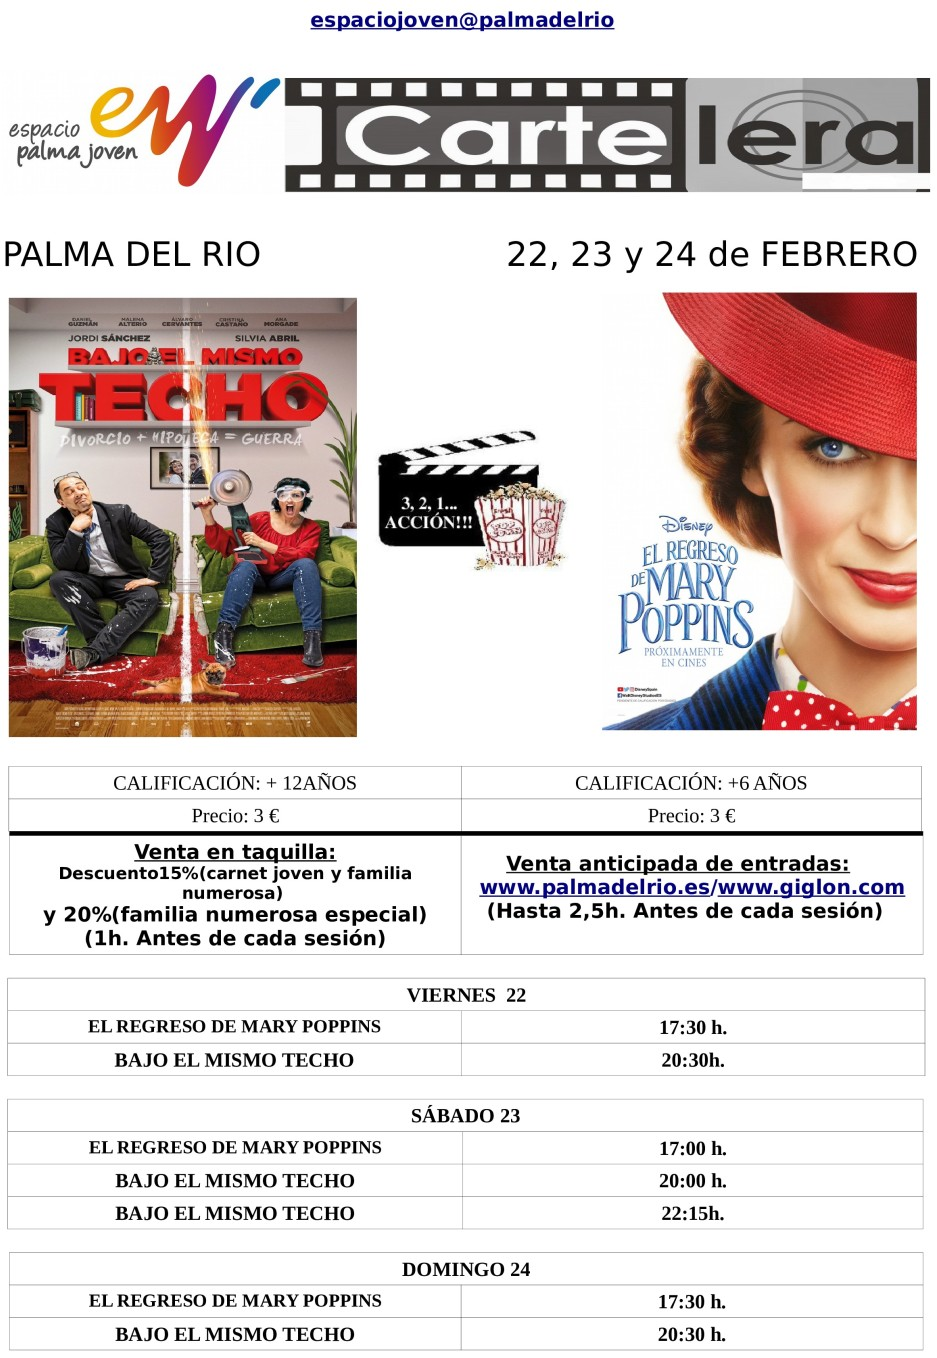 https://www.palmadelrio.es/sites/default/files/cine_22.23.24_febrero_2019.jpg